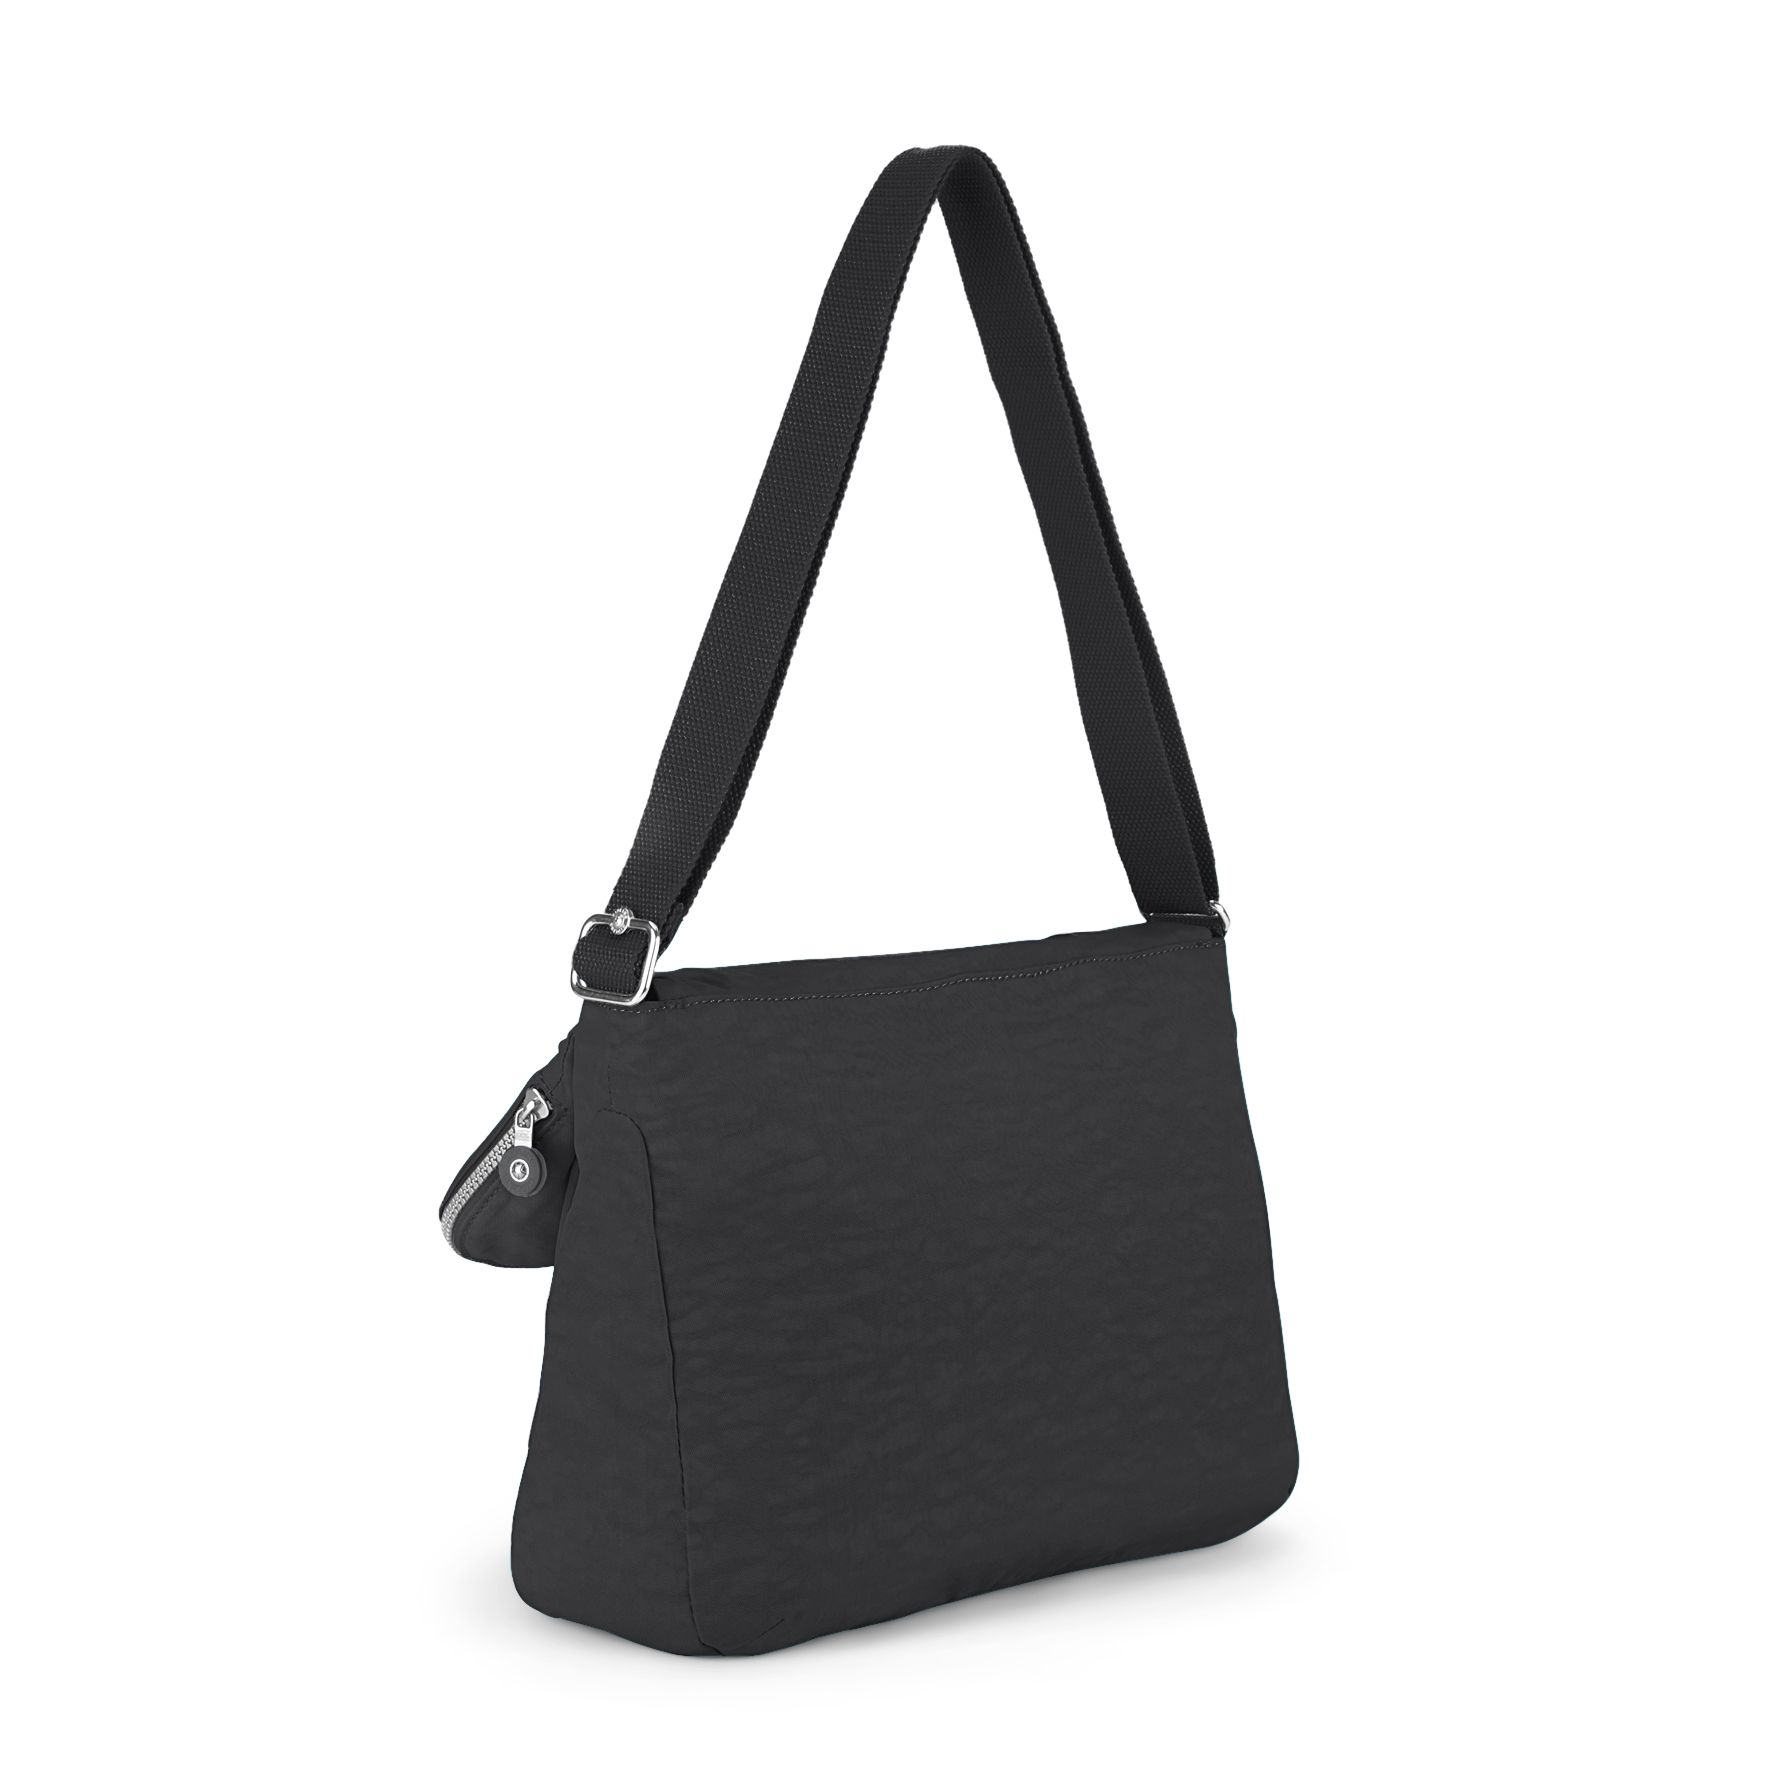 Garan medium shoulder bag